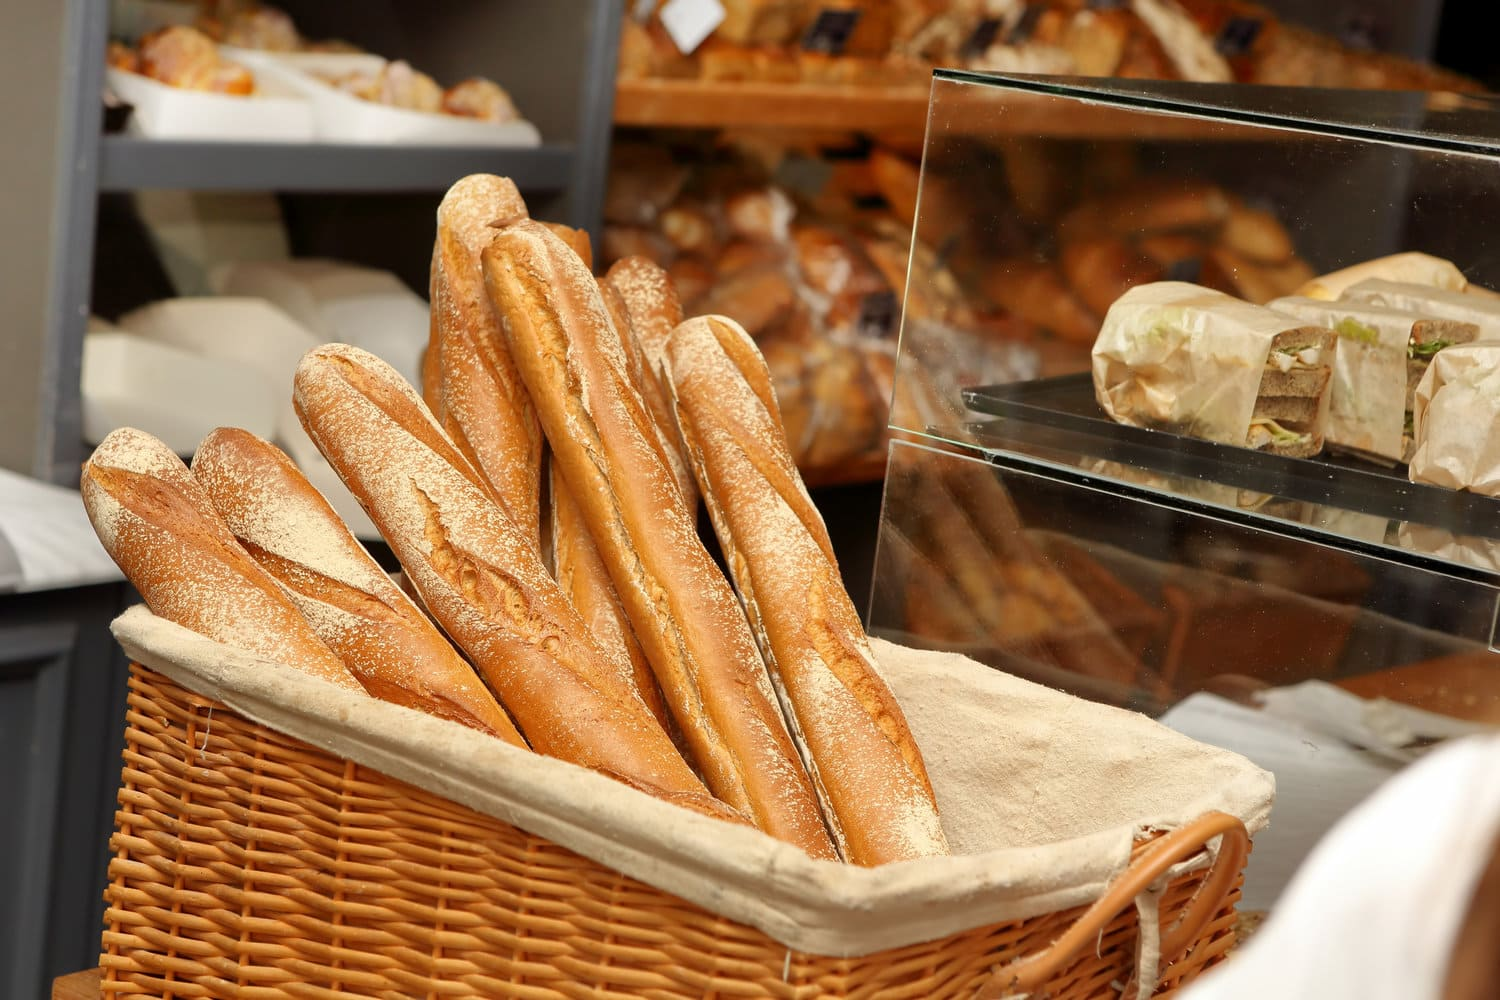 French Baguettes In Wicker Basket In Bakery